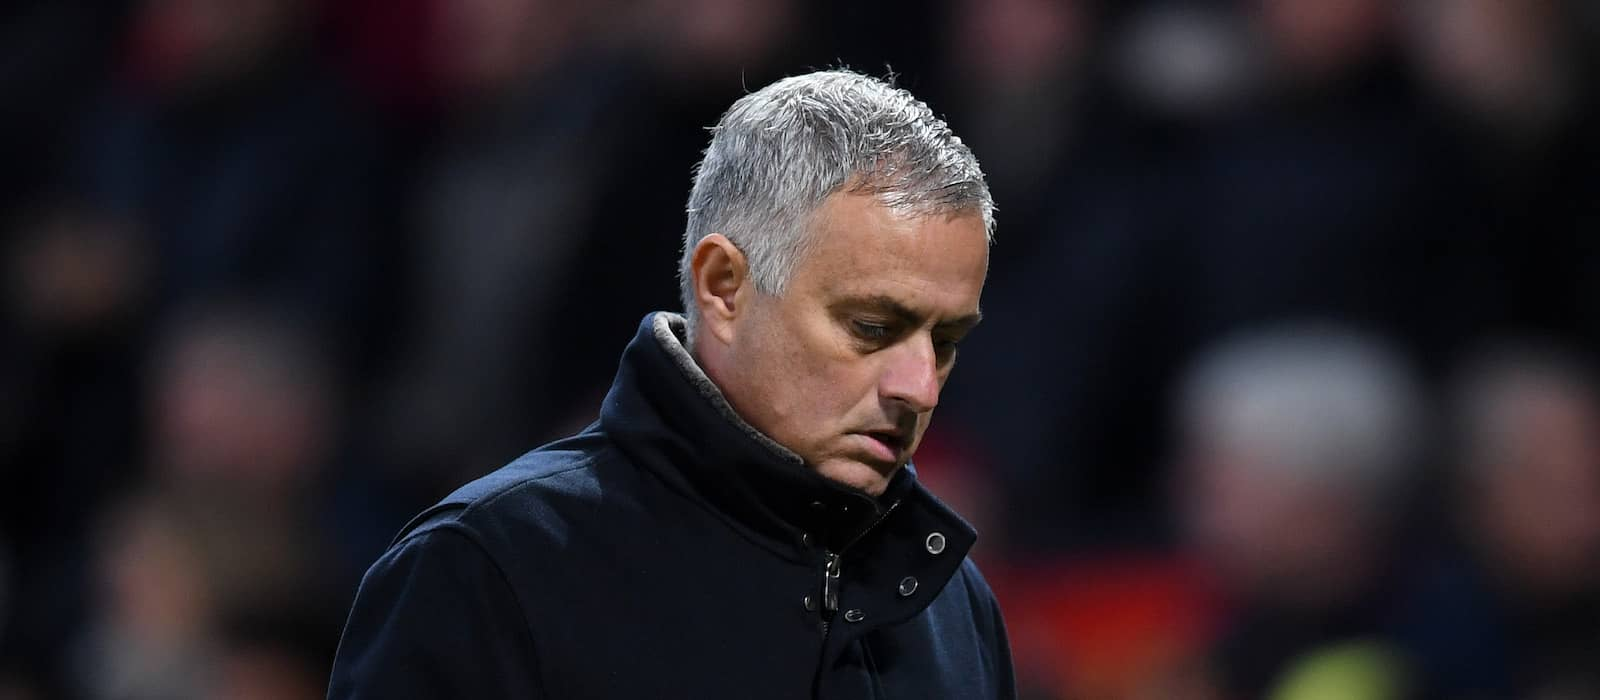 Rio Ferdinand: Jose Mourinho's methods not proactive for Manchester United